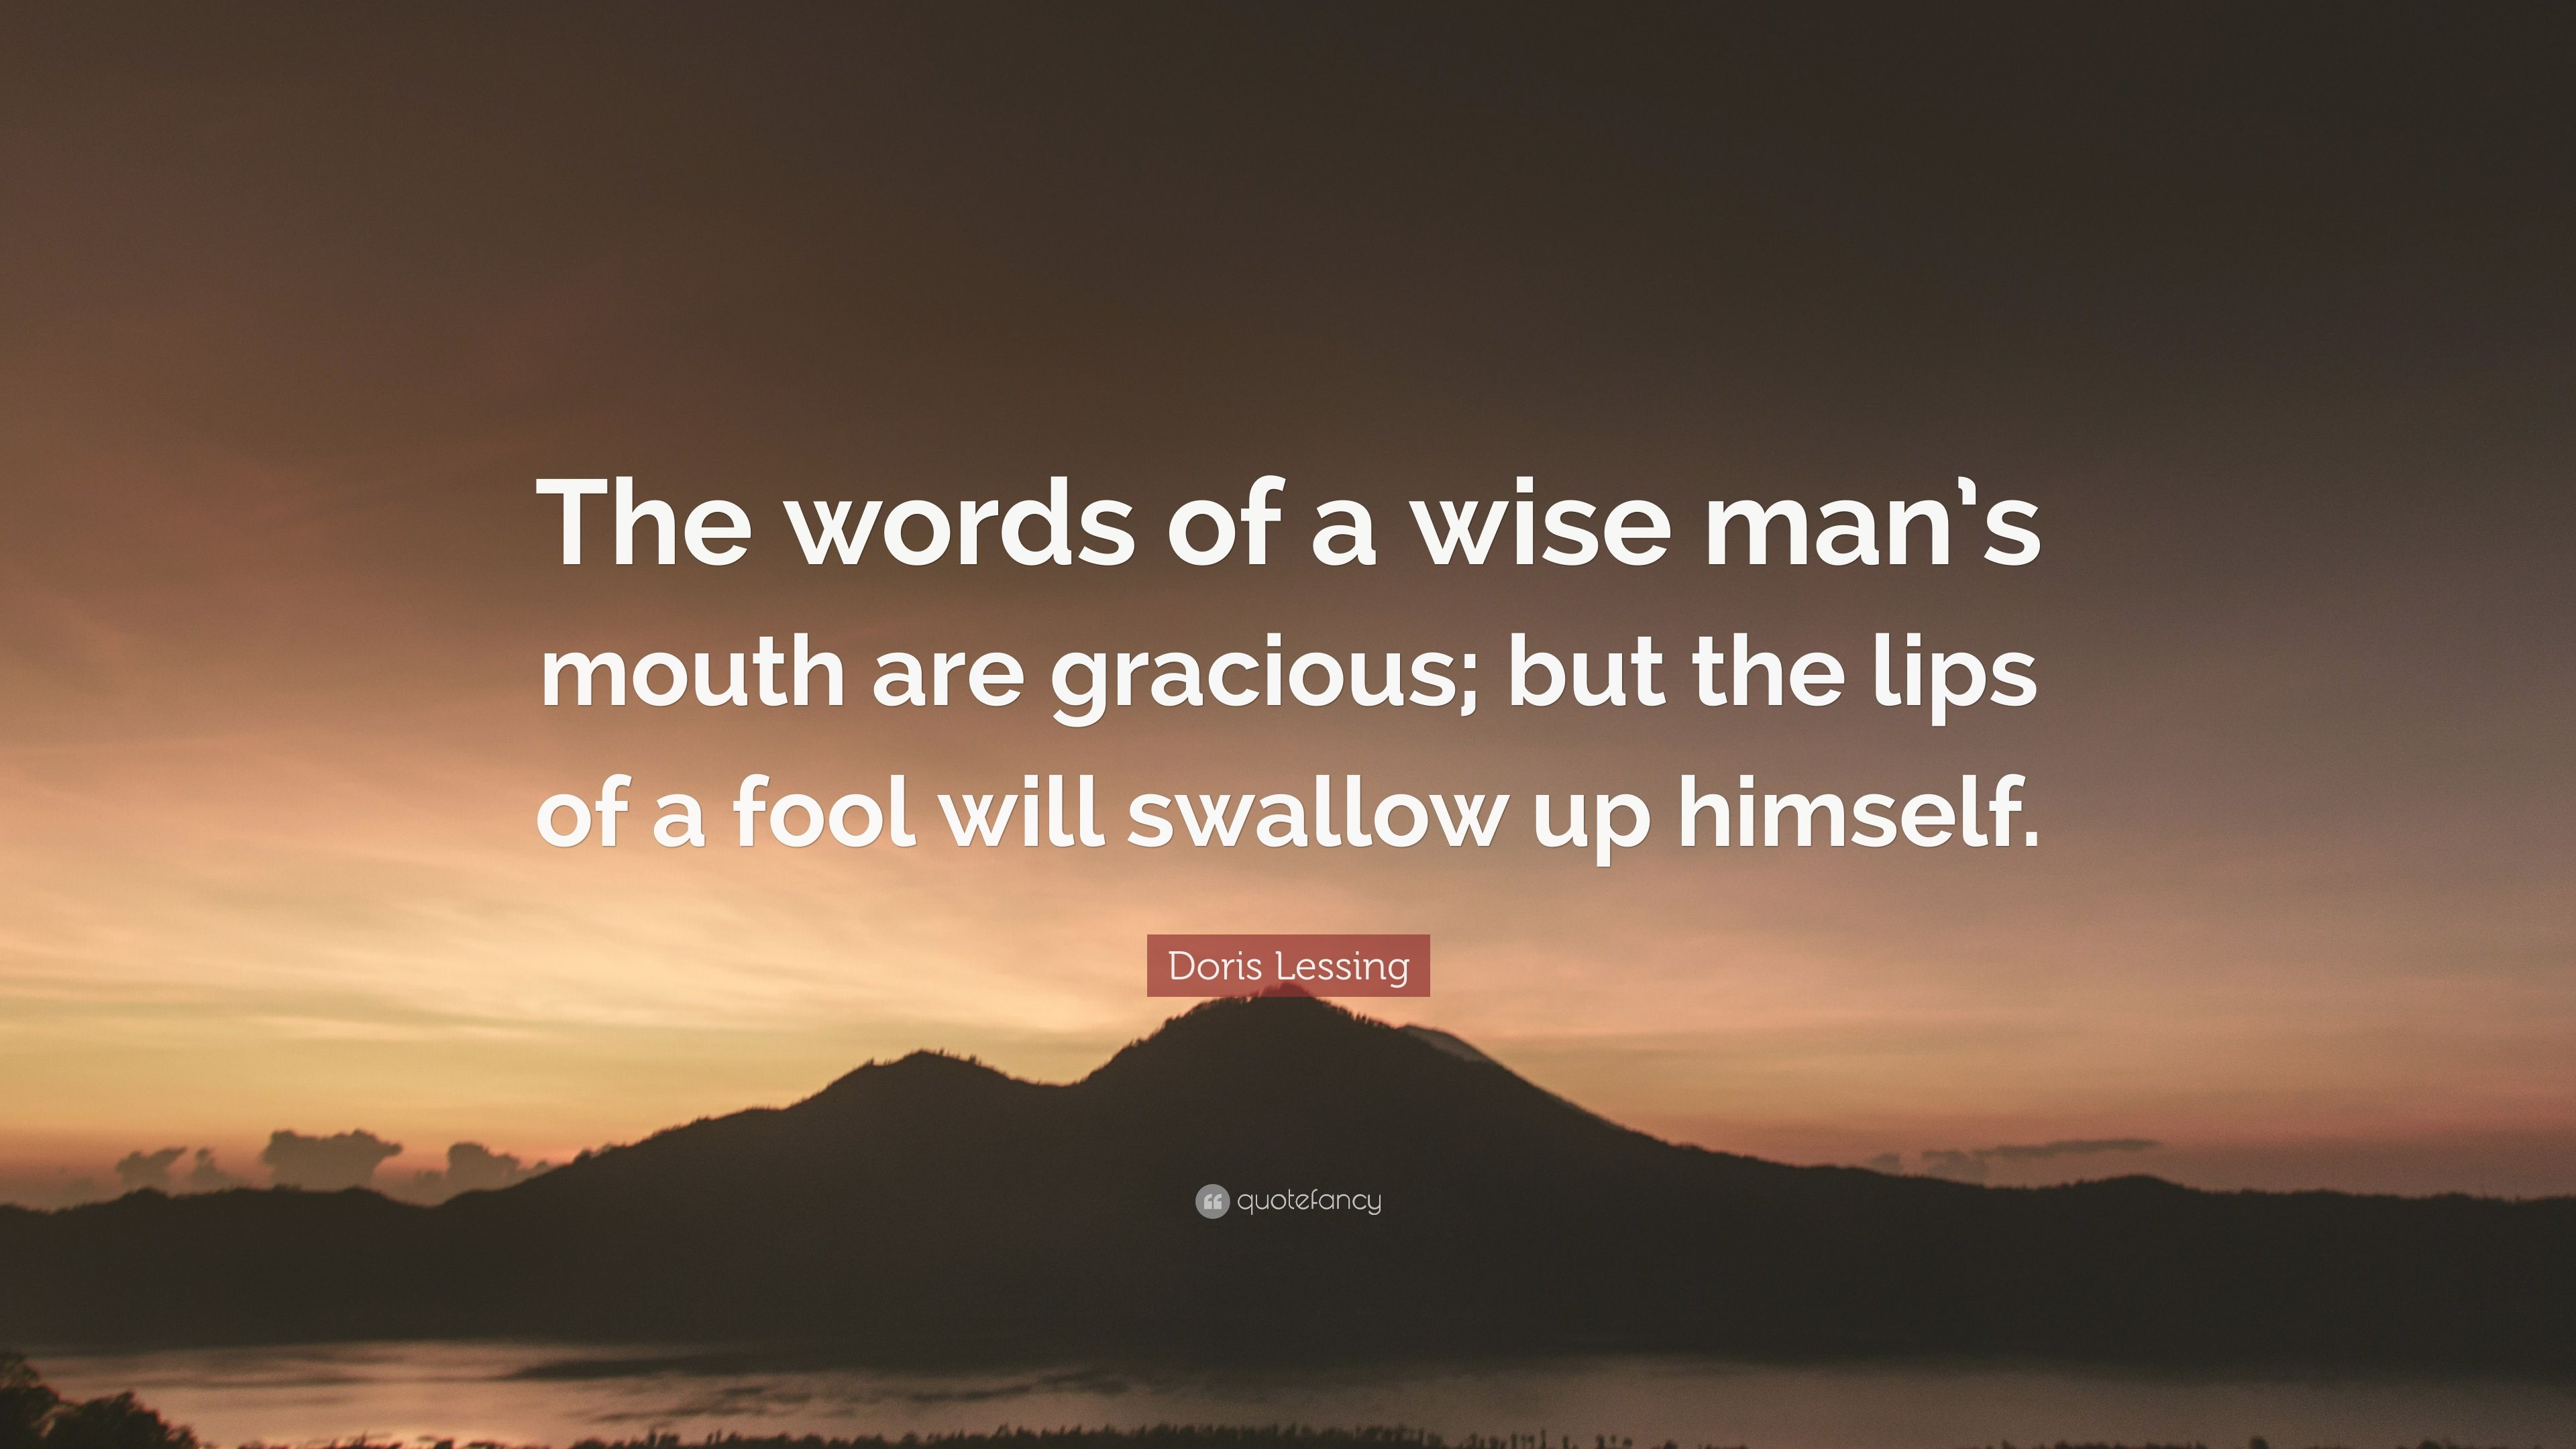 Image result for The words of a wise man's mouth are gracious